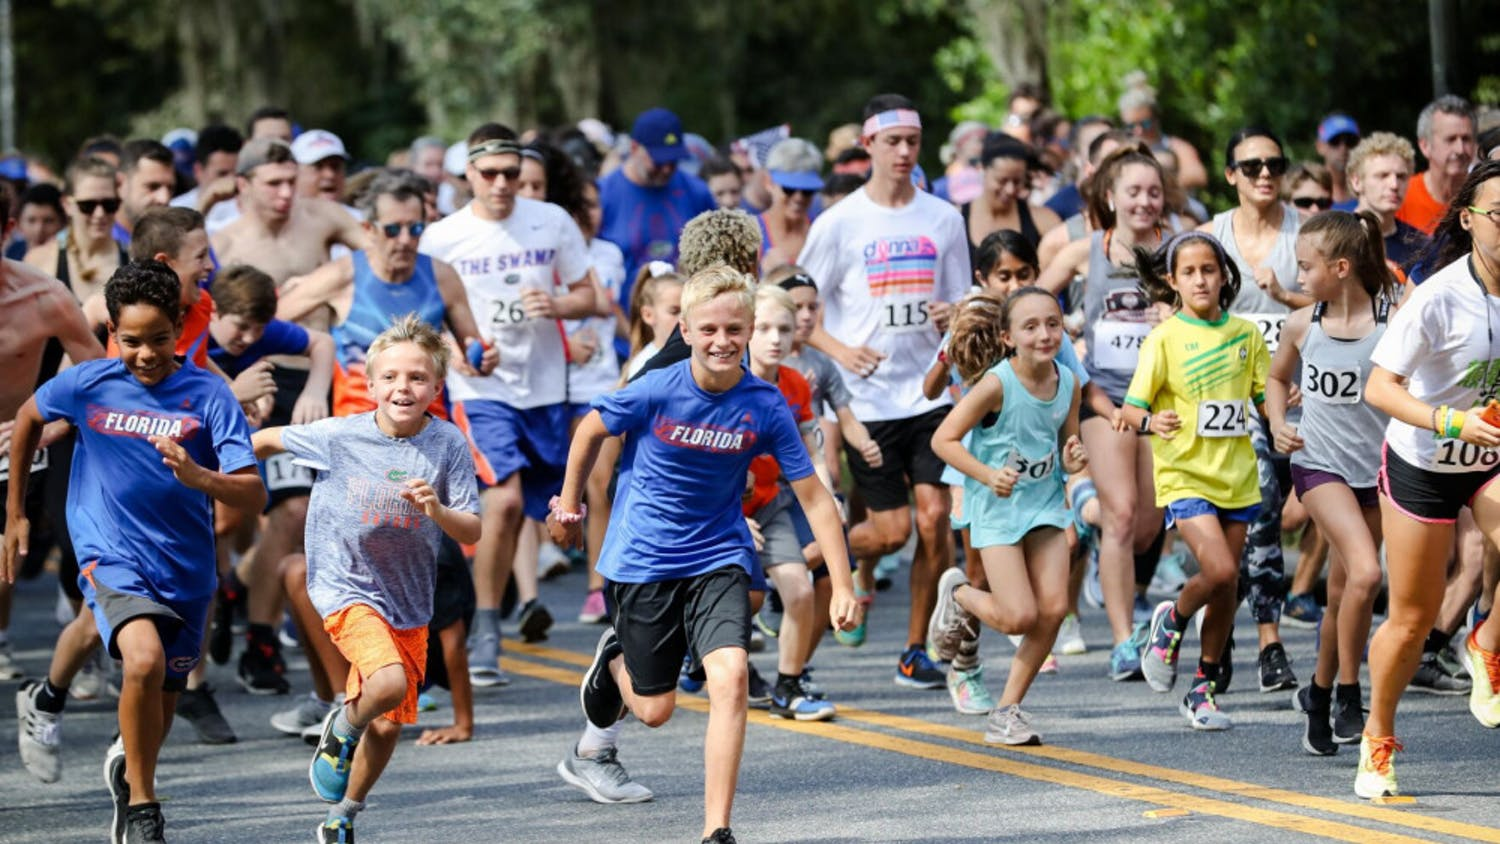 Participants run in the Gator Gallop 5k,one of the various events that takes place during homecoming week at UF in Fall 2019. (Photographer: Adler Garfield, 2019 Director of Photography)